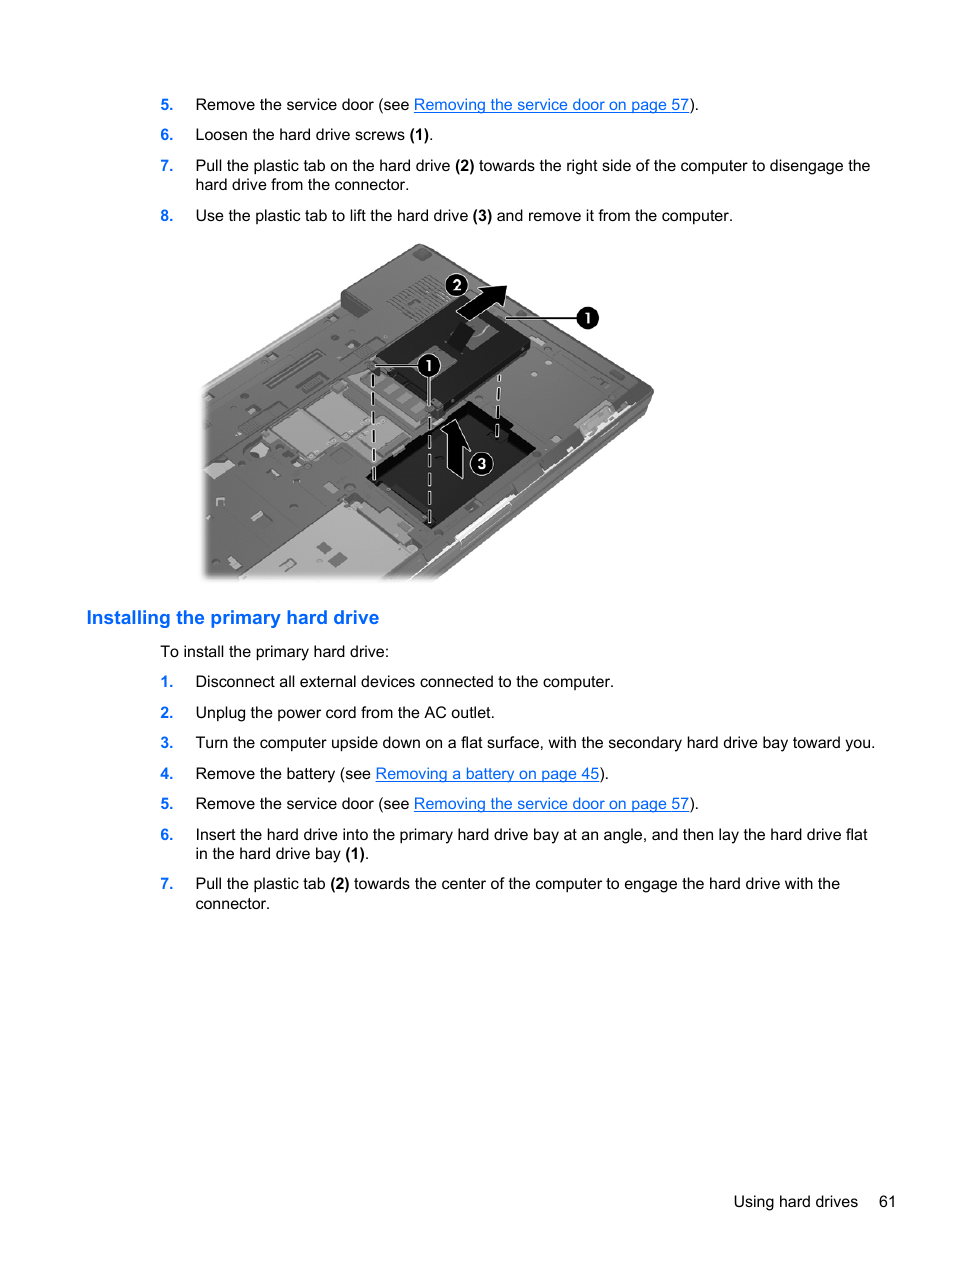 Installing the primary hard drive | HP EliteBook 8770w Mobile Workstation  User Manual | Page 73 / 128